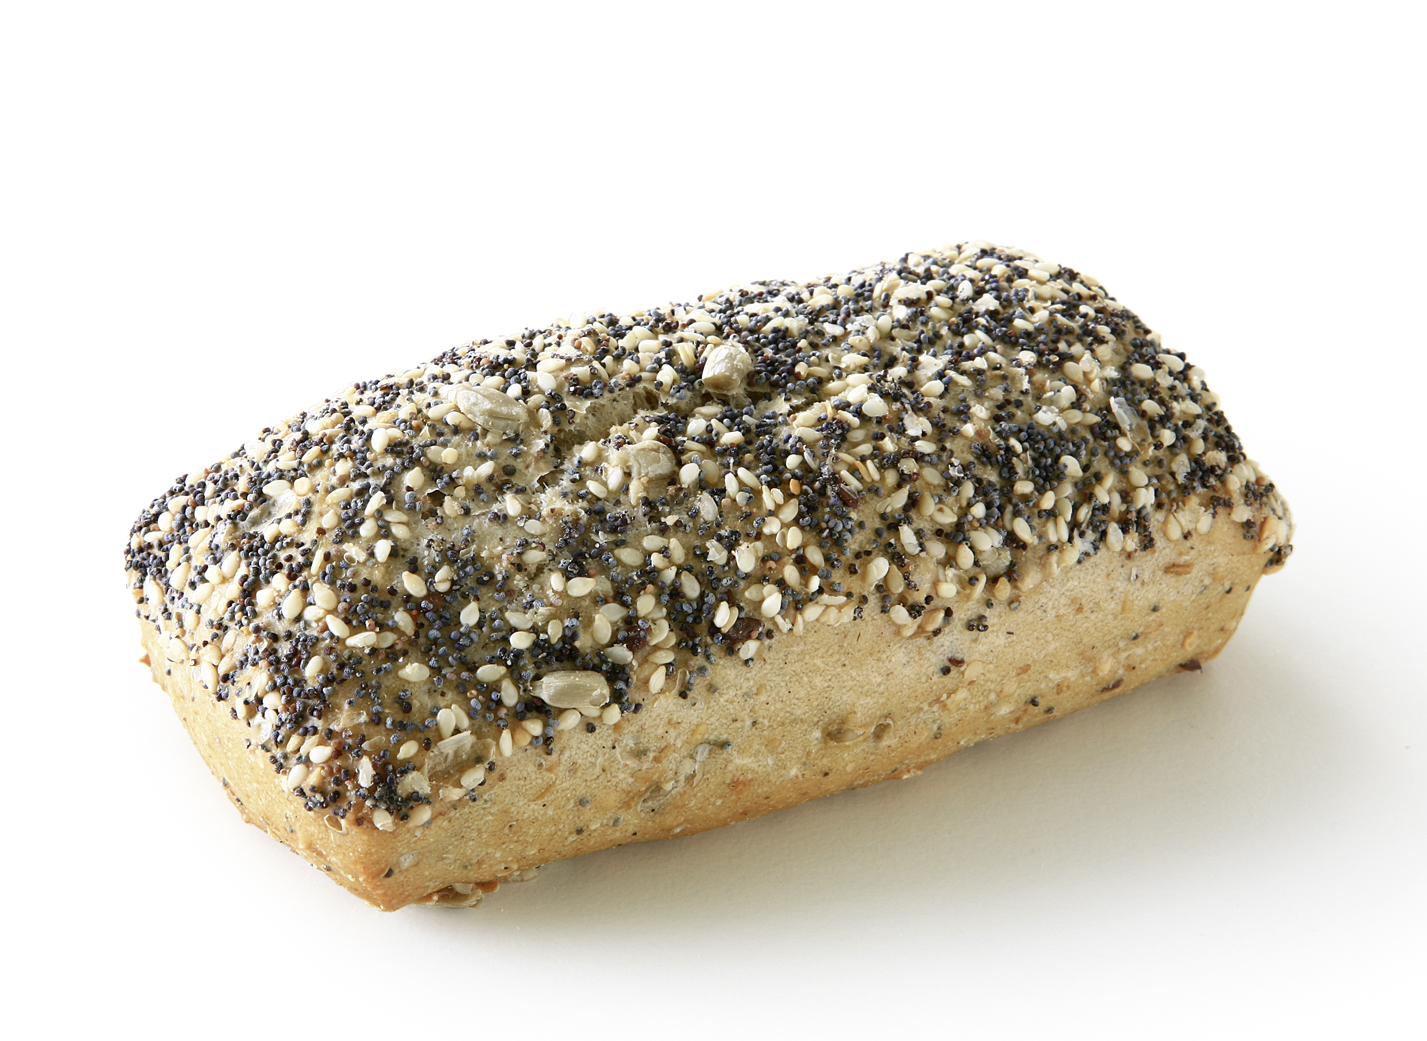 Fitness stick - Multigrain roll/ upper side: sprinkled with sesame, poppy and sunflower seeds bottom side: sprinkled with sunflower seeds